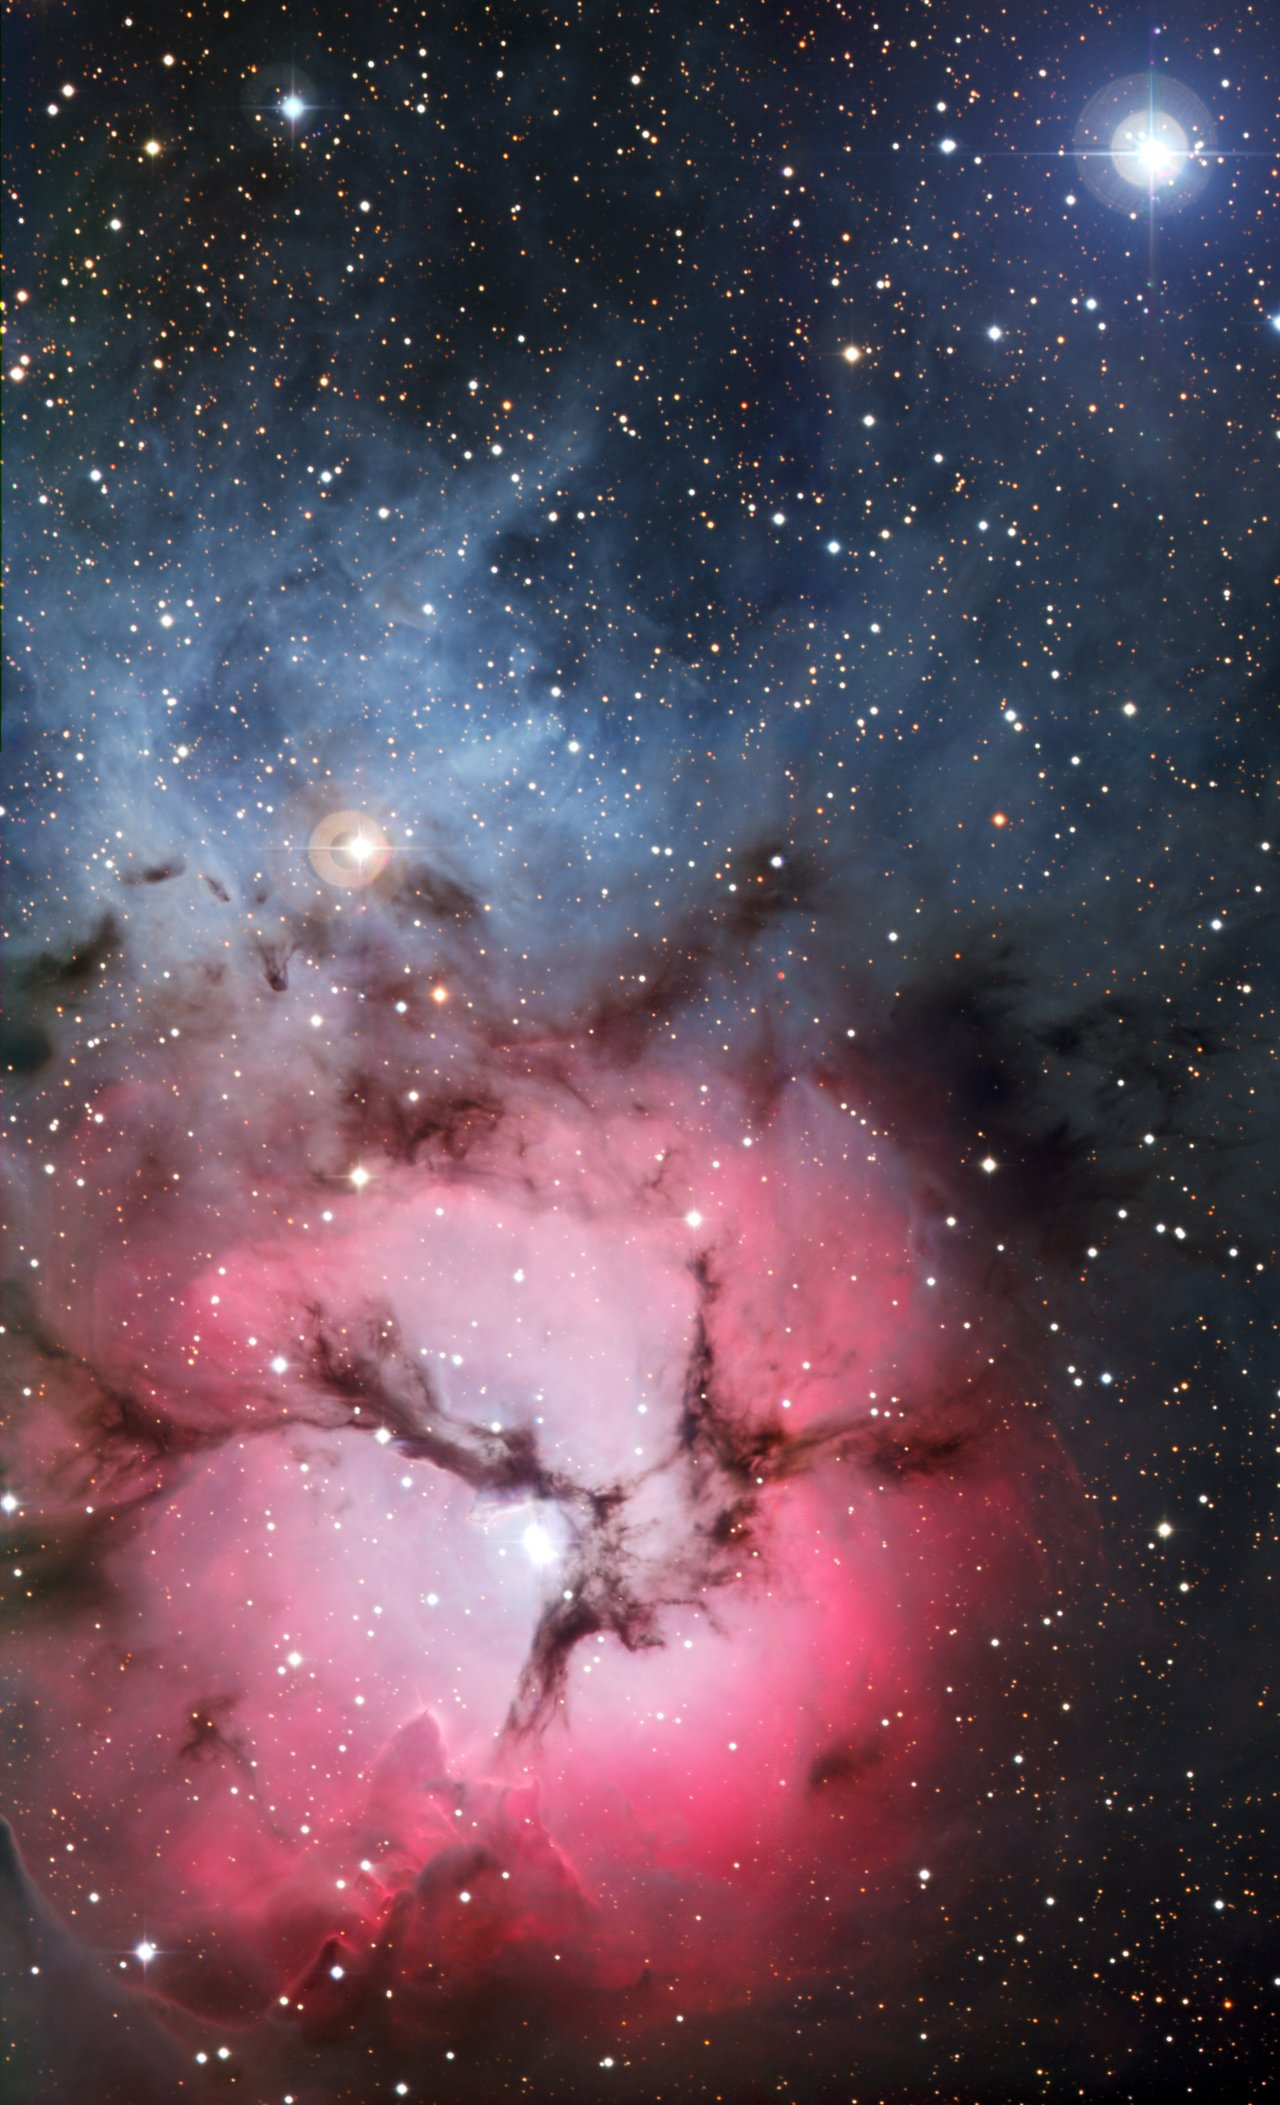 The Trifid Nebula